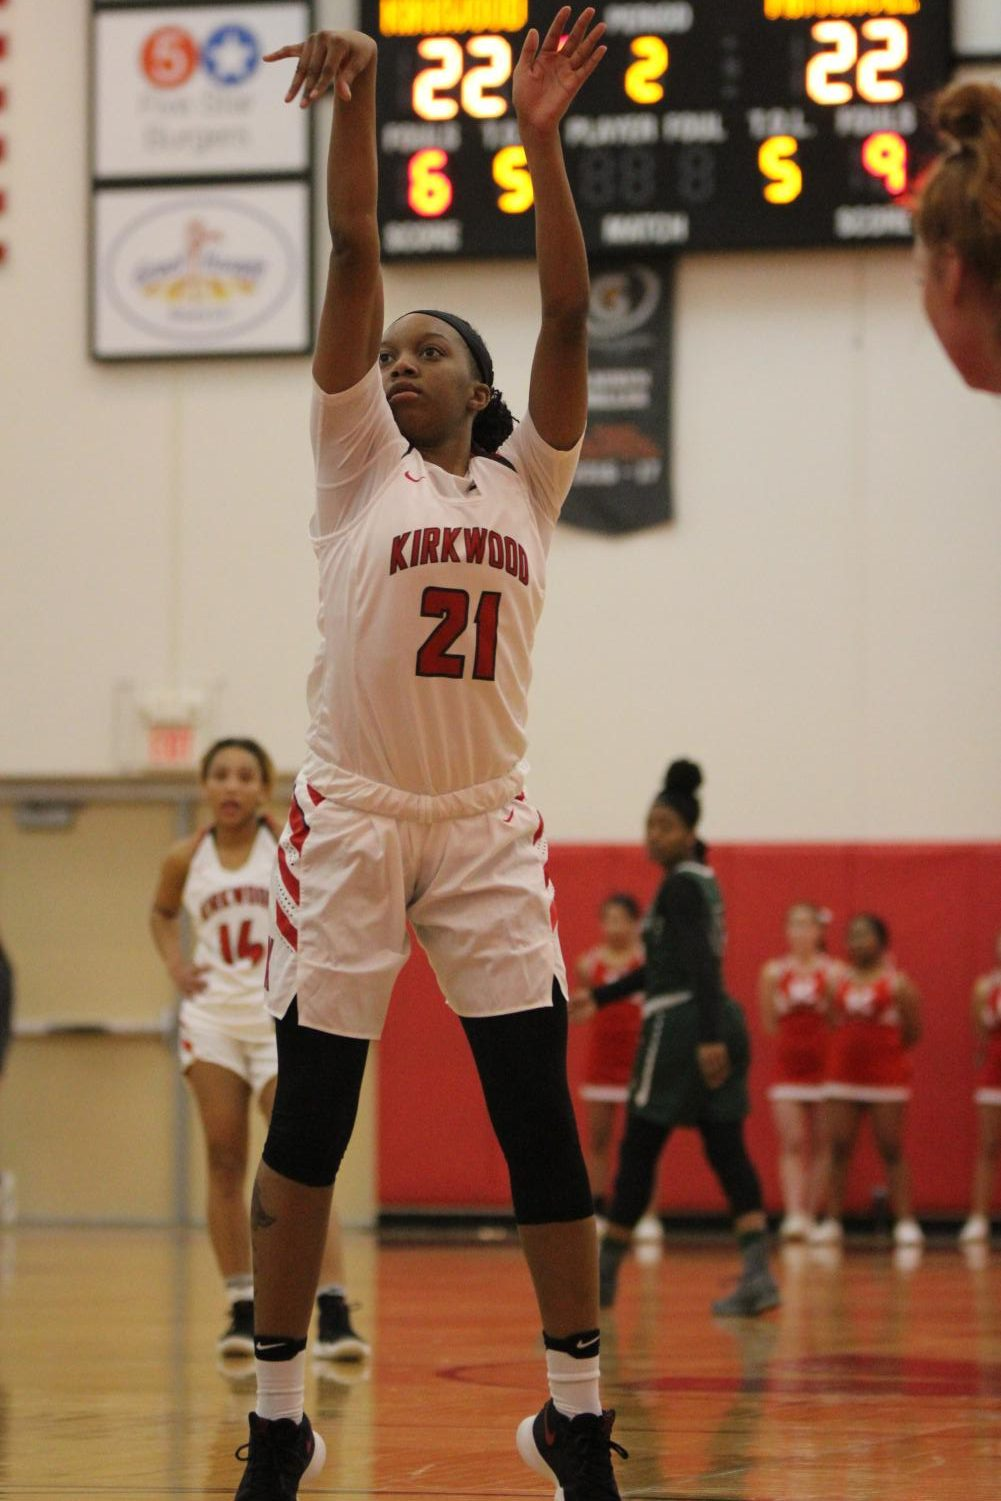 Jaidah+Stewart%2C+senior%2C+shoots+a+free+throw.+